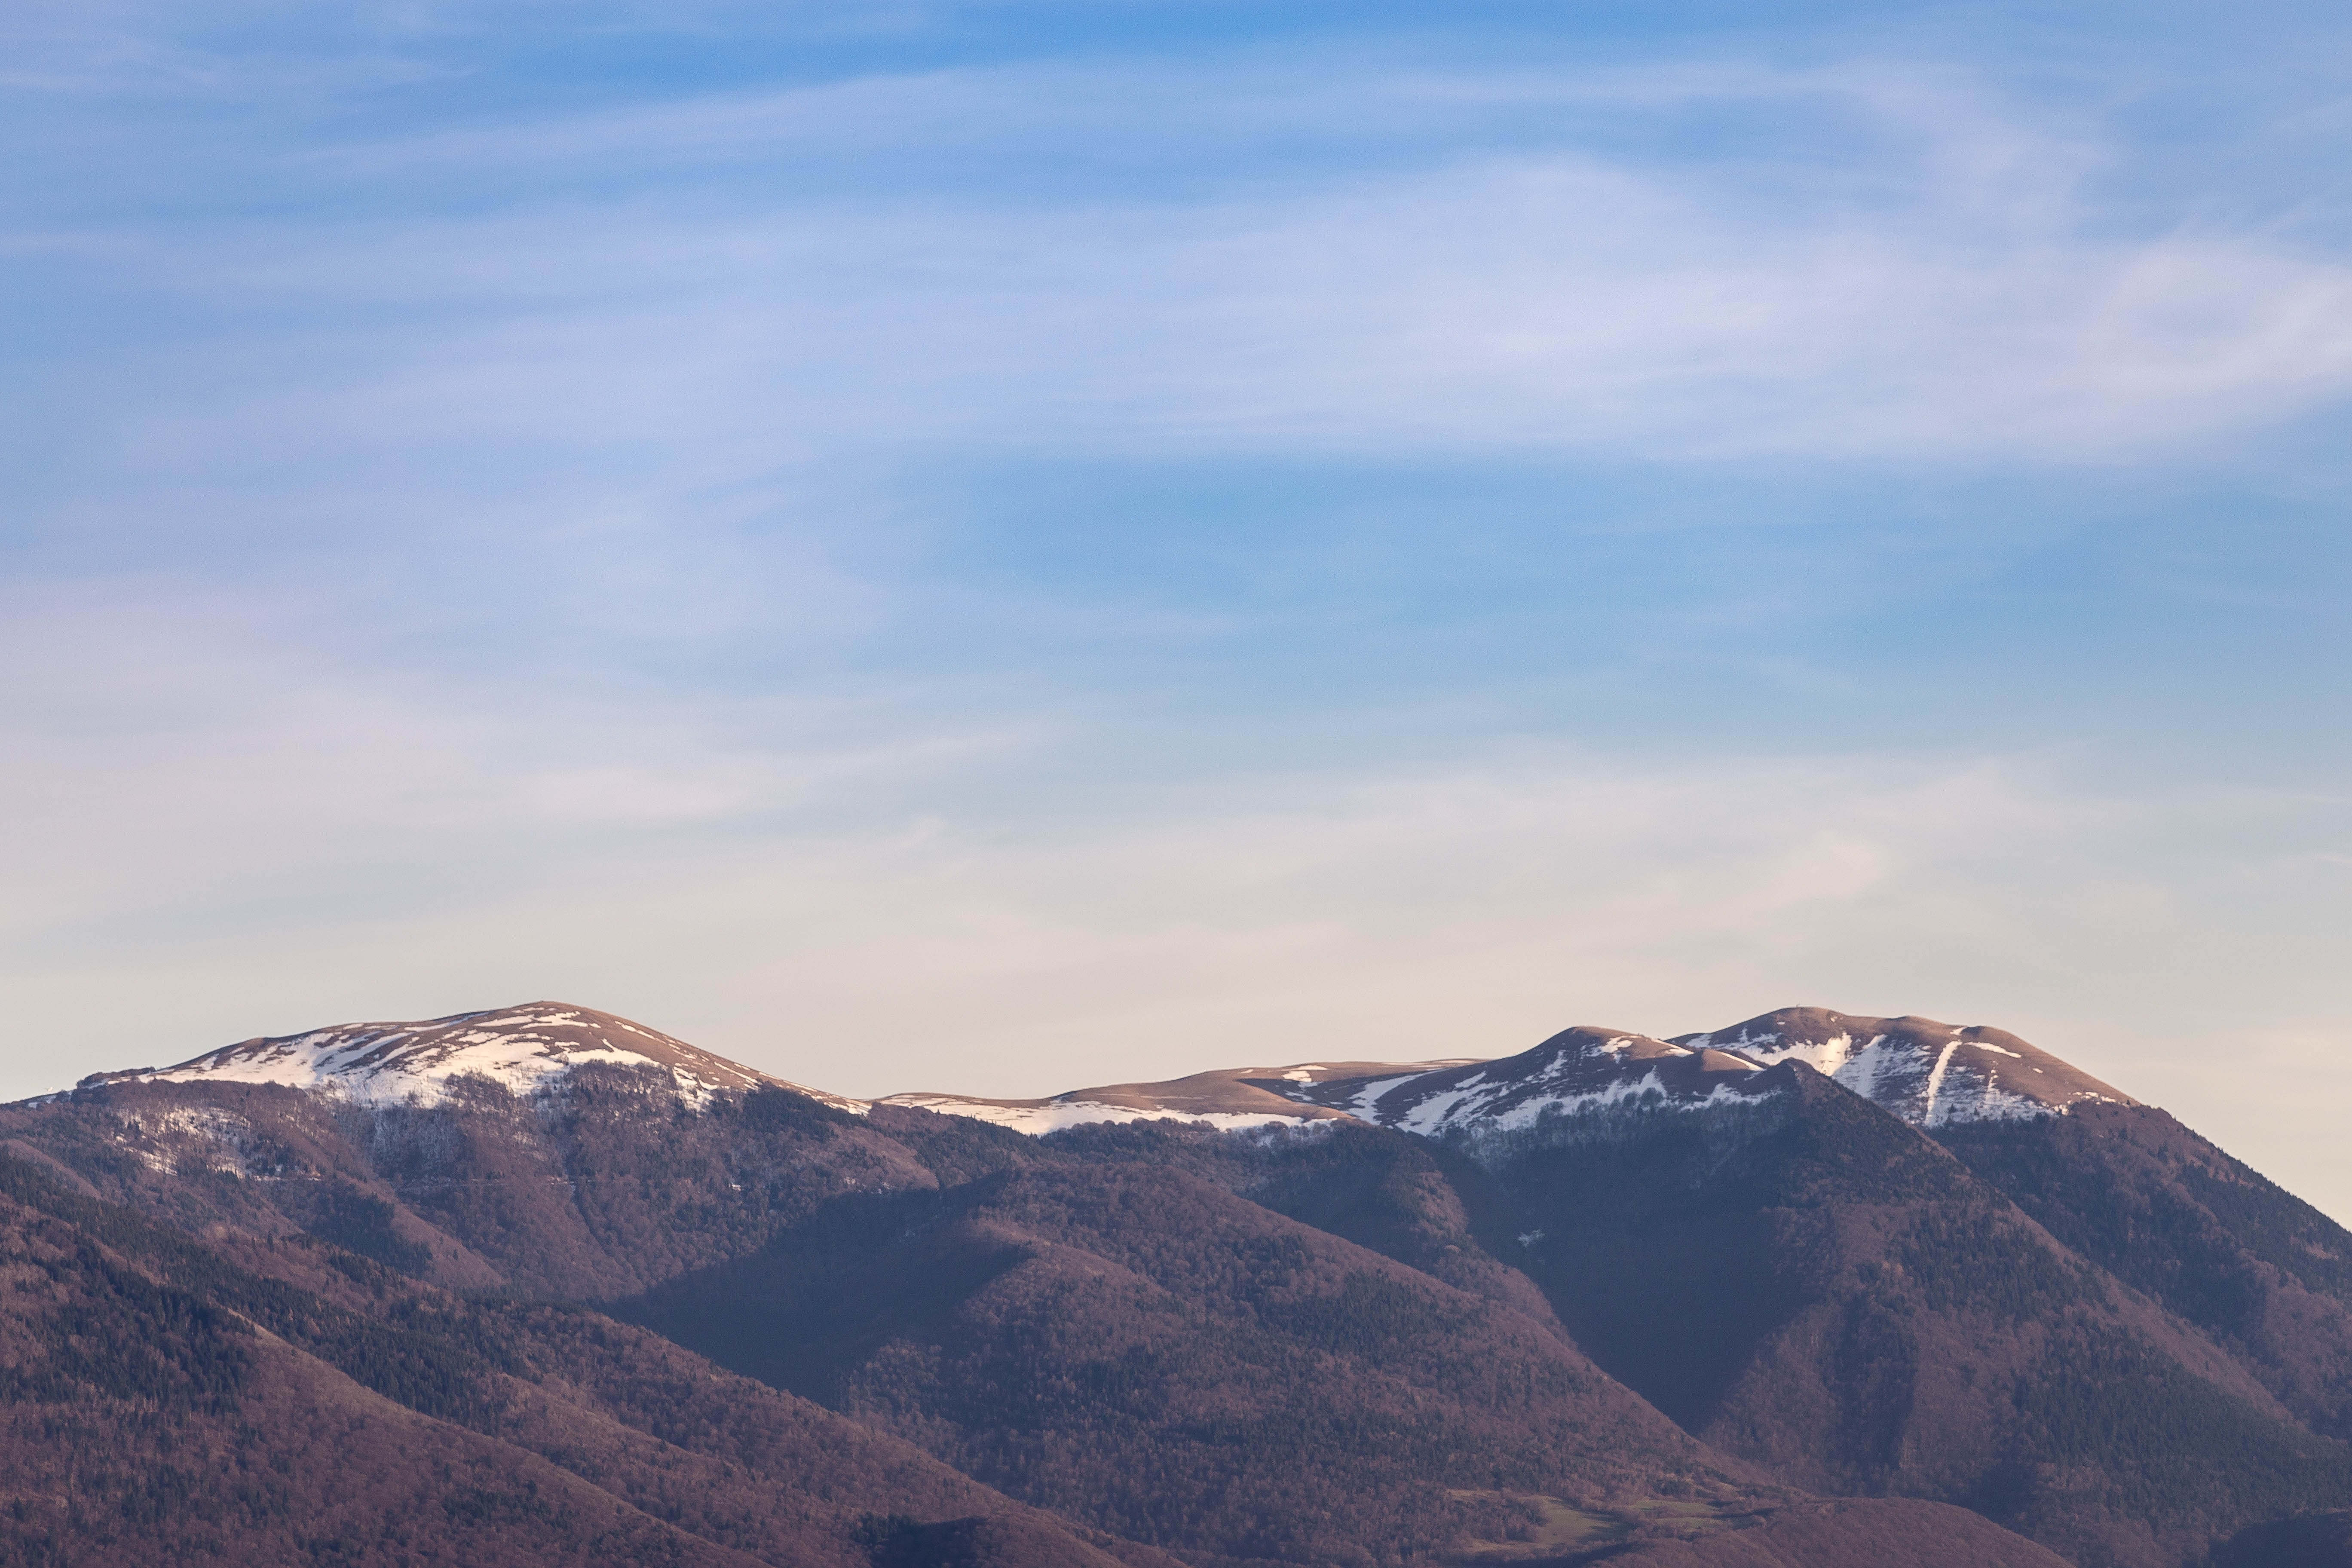 landscape photography of mountain range under clear blue sky